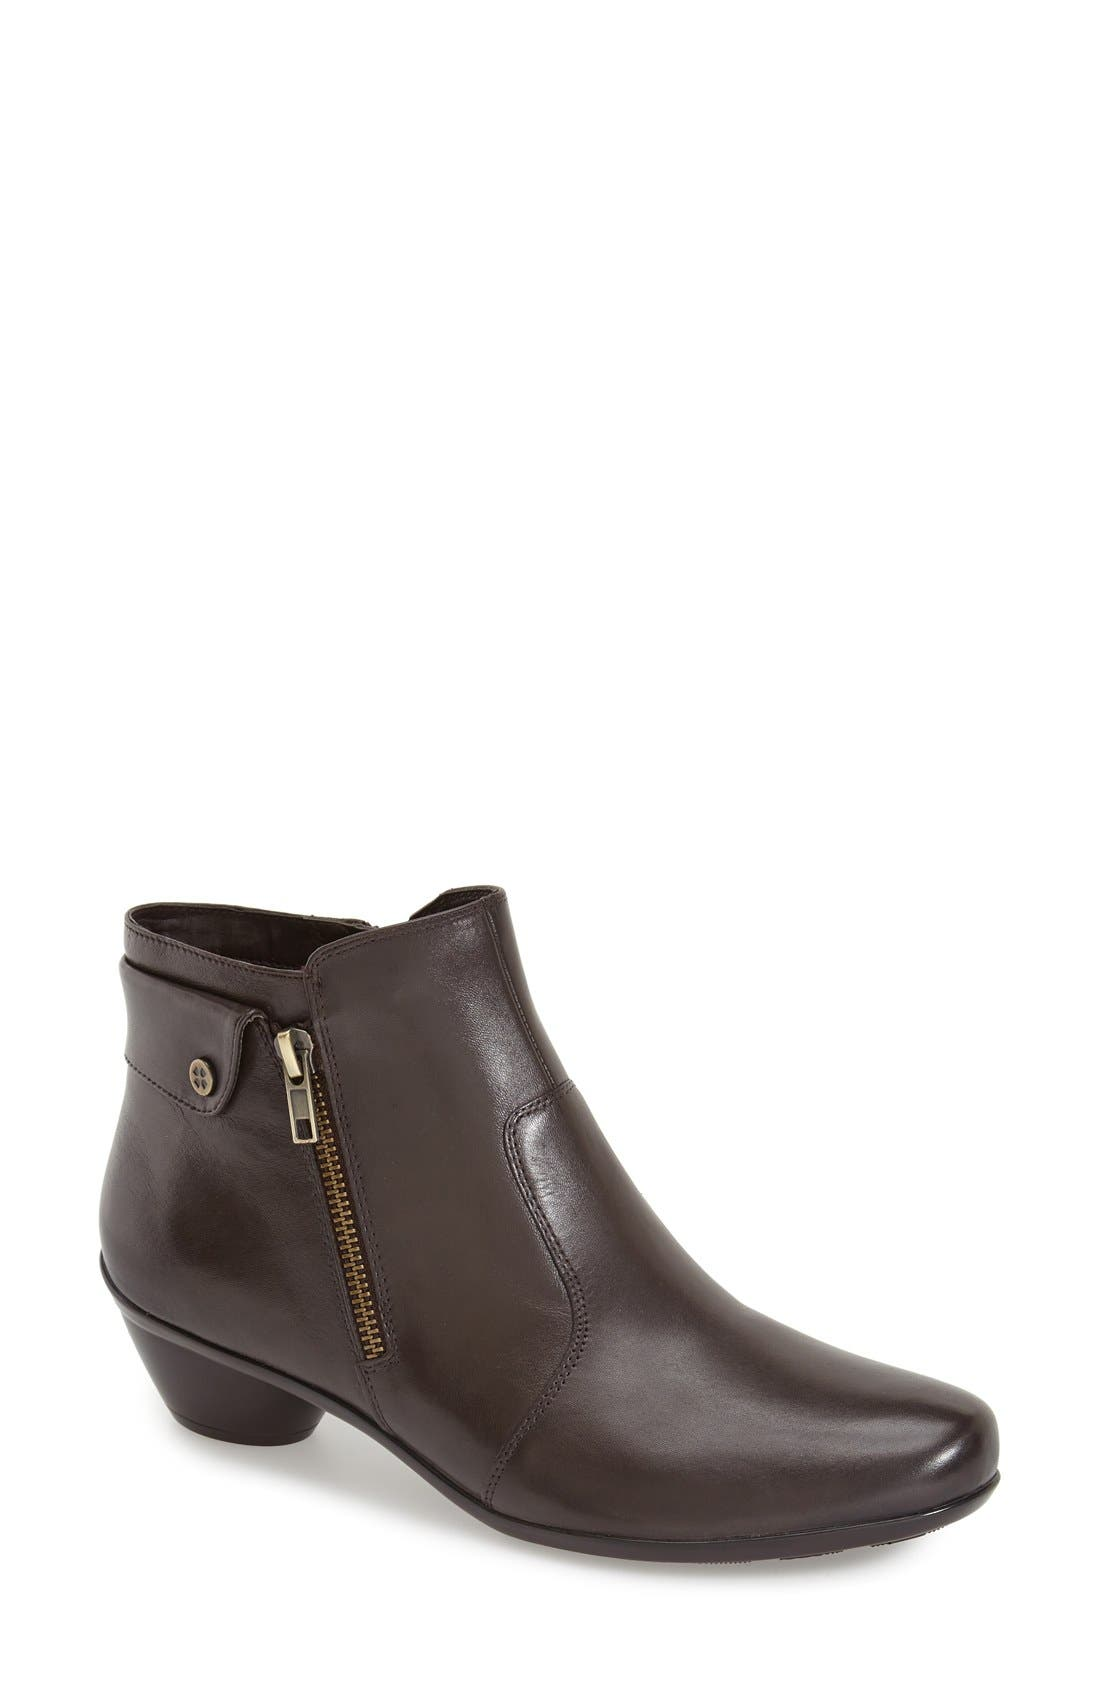 'Haley'  Bootie,                         Main,                         color, Oxford Brown